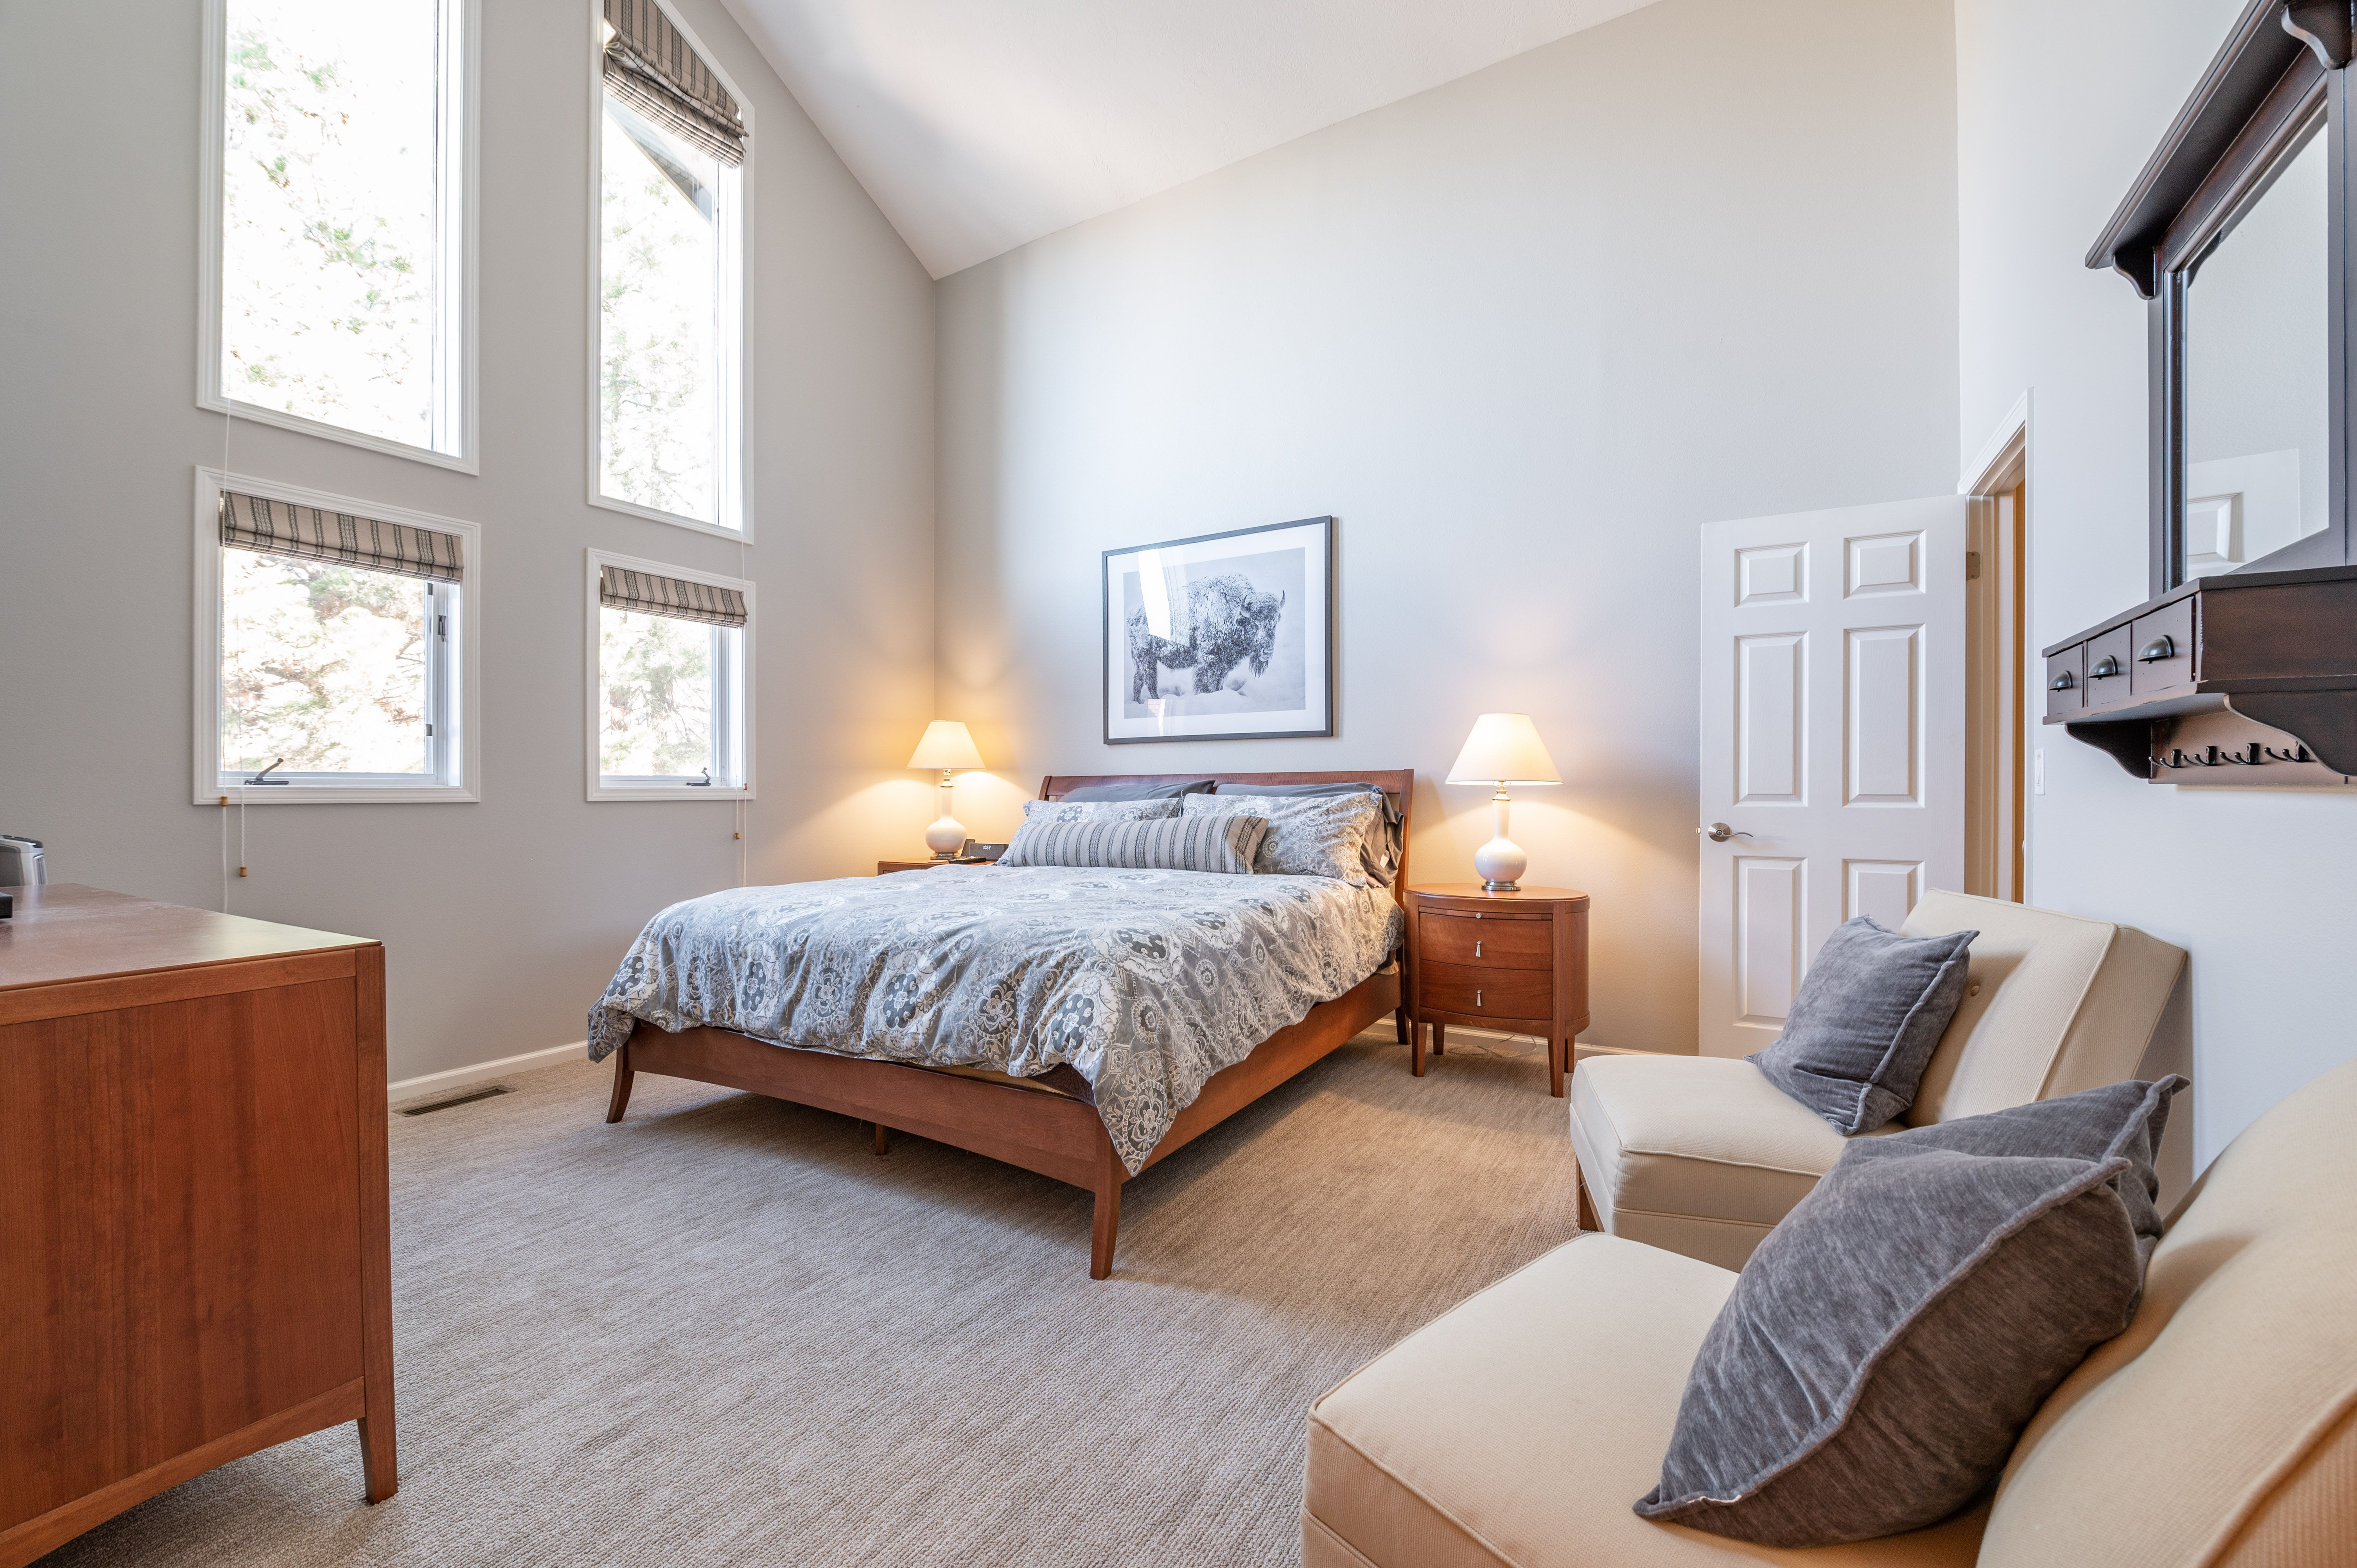 This 3 bed/3.5 bath, 2,800 sq ft condo also just happens to be the place to live your best life. Inside is exactly what you'd hope for, bright and inviting spaces (thanks to its vaulted ceilings and a sea of windows) and cozy, private places with each of the bedrooms on its own floor.   7430 S Wasatch Blvd E C-2 Salt Lake City, UT 84121 #WindermereUtah #RealEstate #Bedroom #SkiInSkiOut #BigCottonwoodCanyon #Condo #Utah #UtahLiving #MovetoUtah #Moving #MasterBedroom #Bedroom